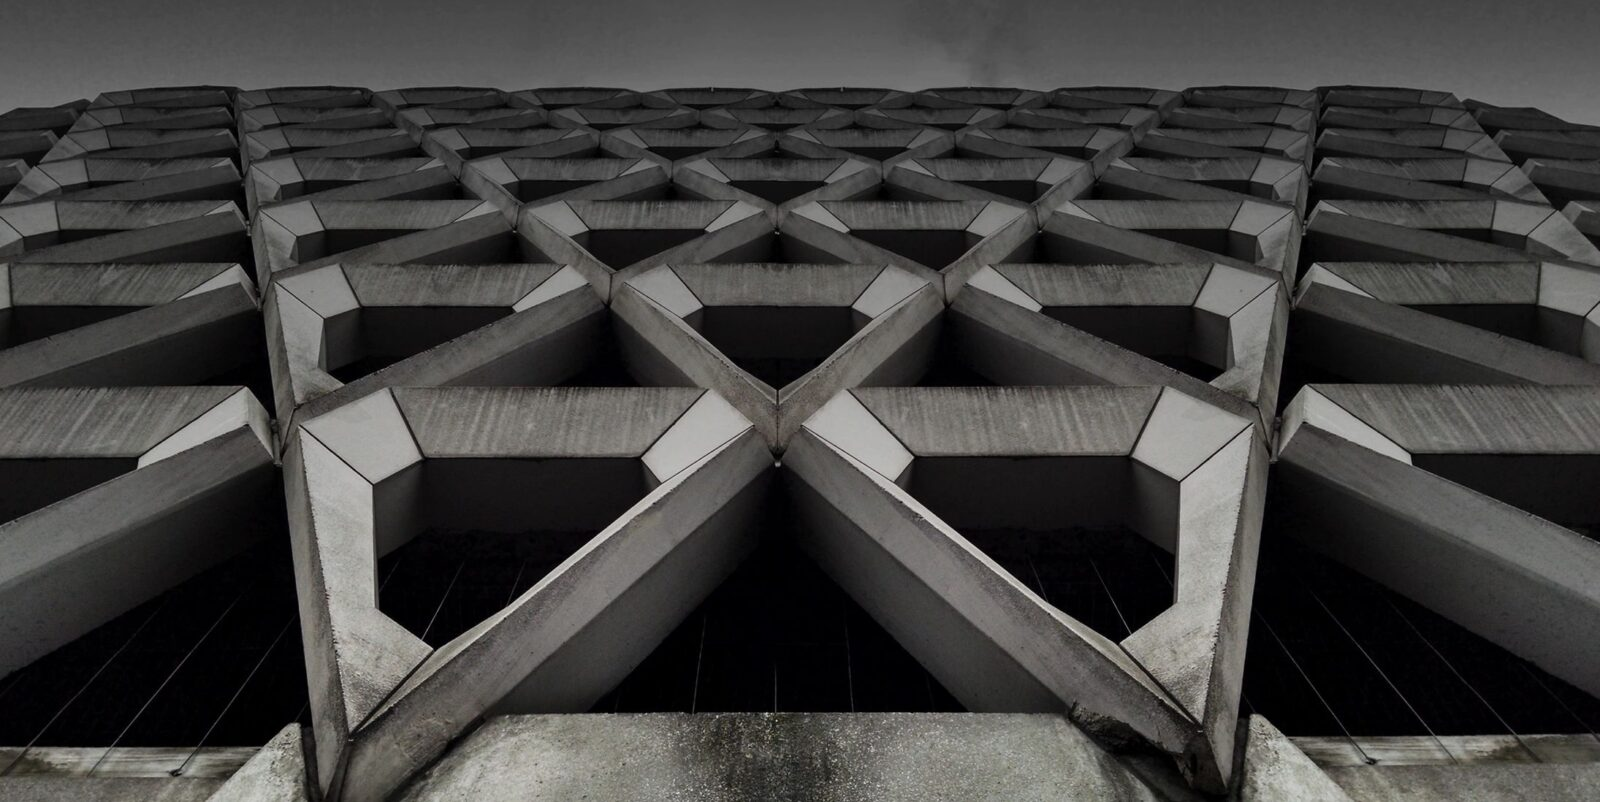 artsy black and white stock photo looking upward at modernist concrete scaffolding on the outside of a building